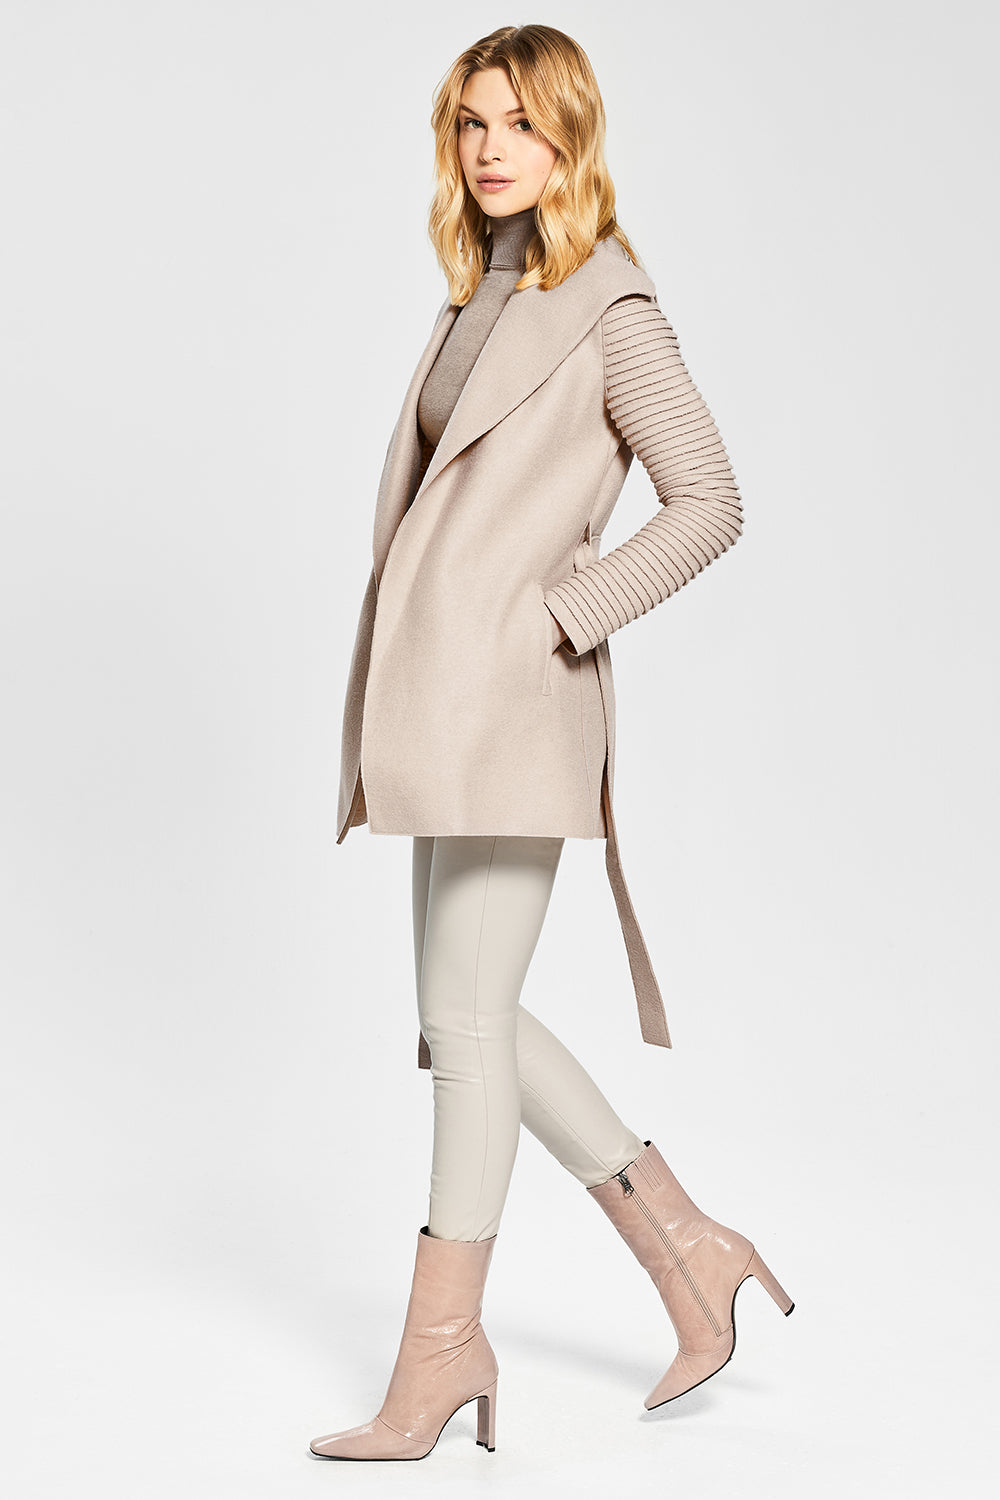 Sentaler Wrap Coat with Ribbed Sleeves featured in Superfine Alpaca and available in Chamois. Seen open.